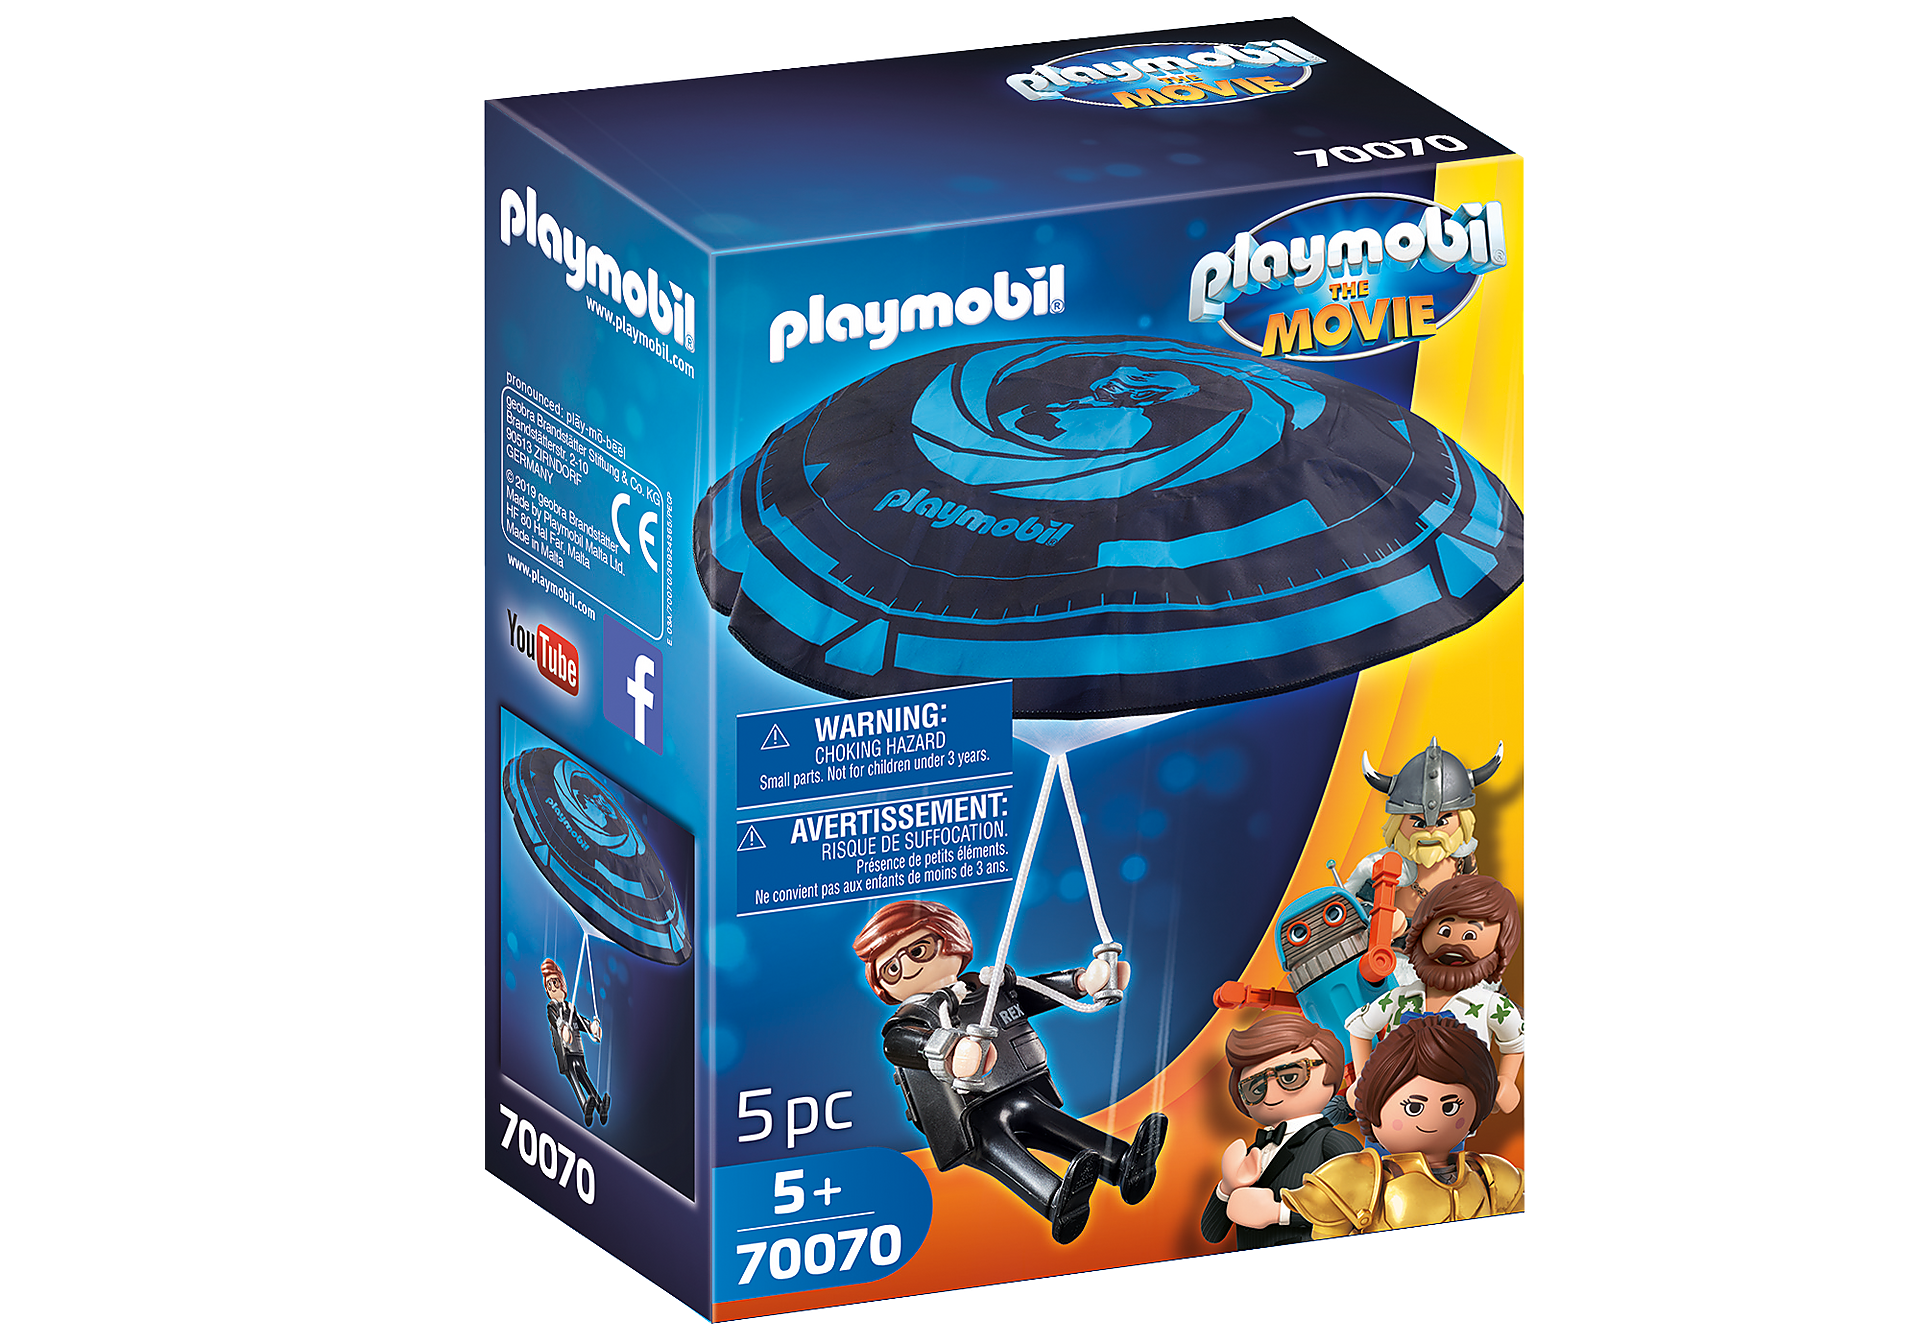 70070 PLAYMOBIL:THE MOVIE Rex Dasher with Parachute zoom image2